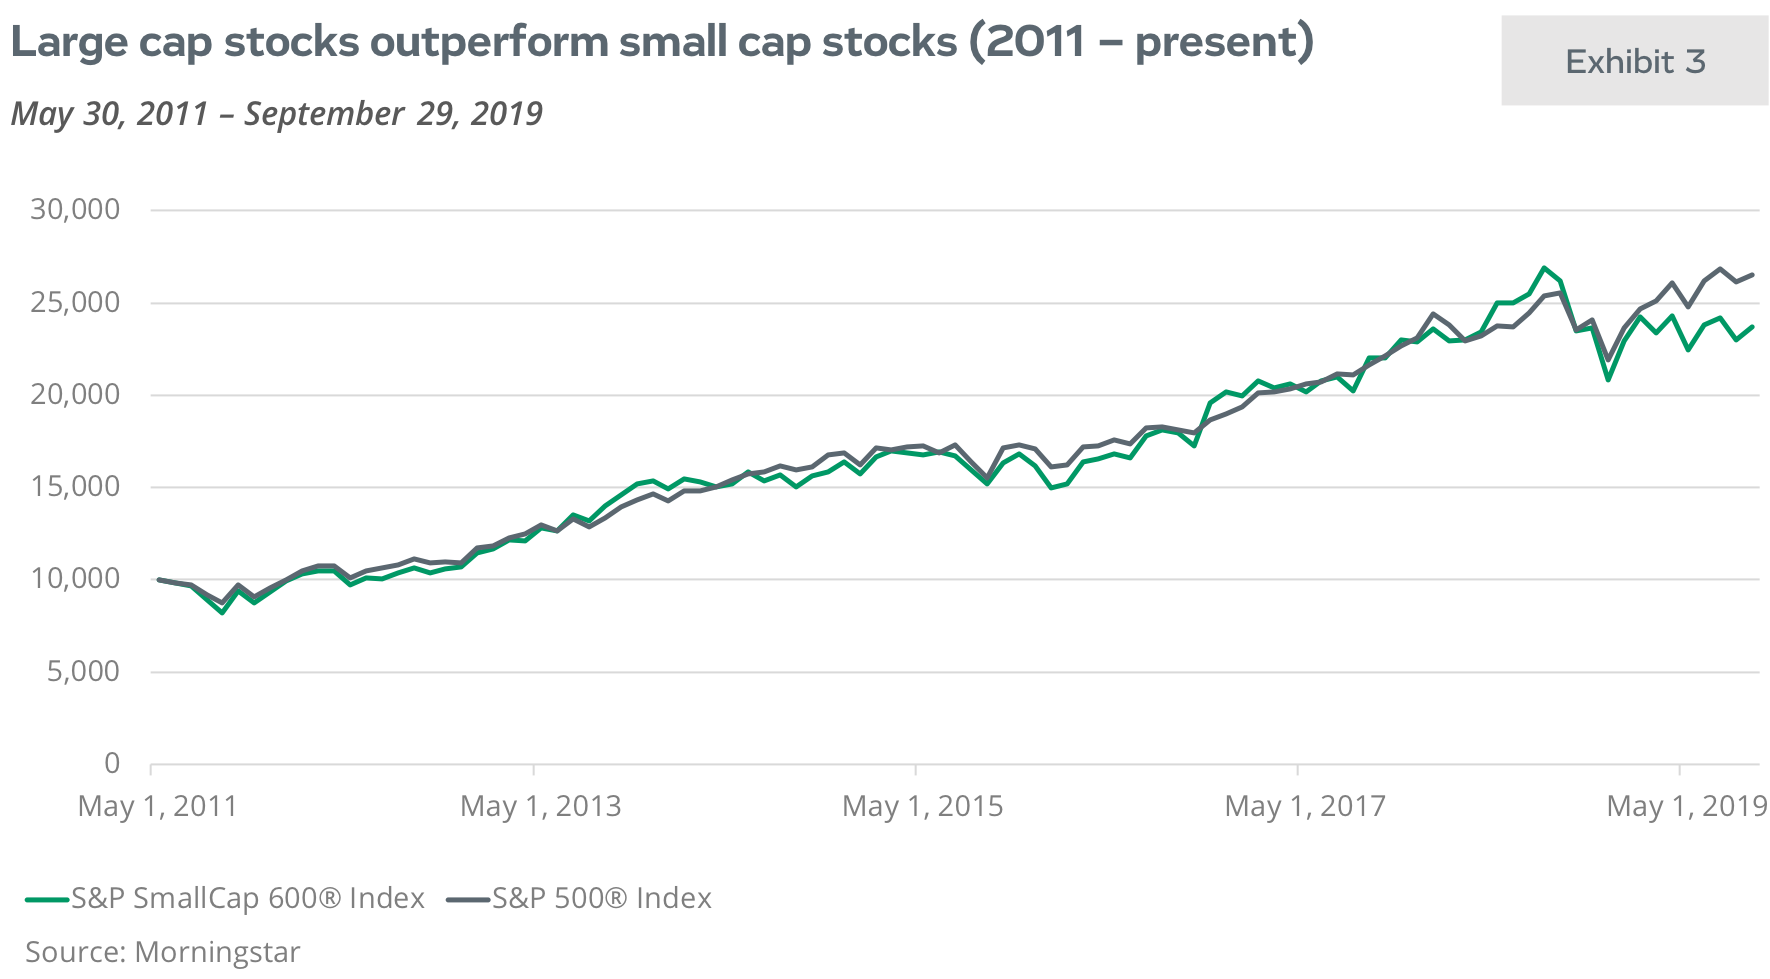 Large cap stocks outperform small cap stocks (2011-present)